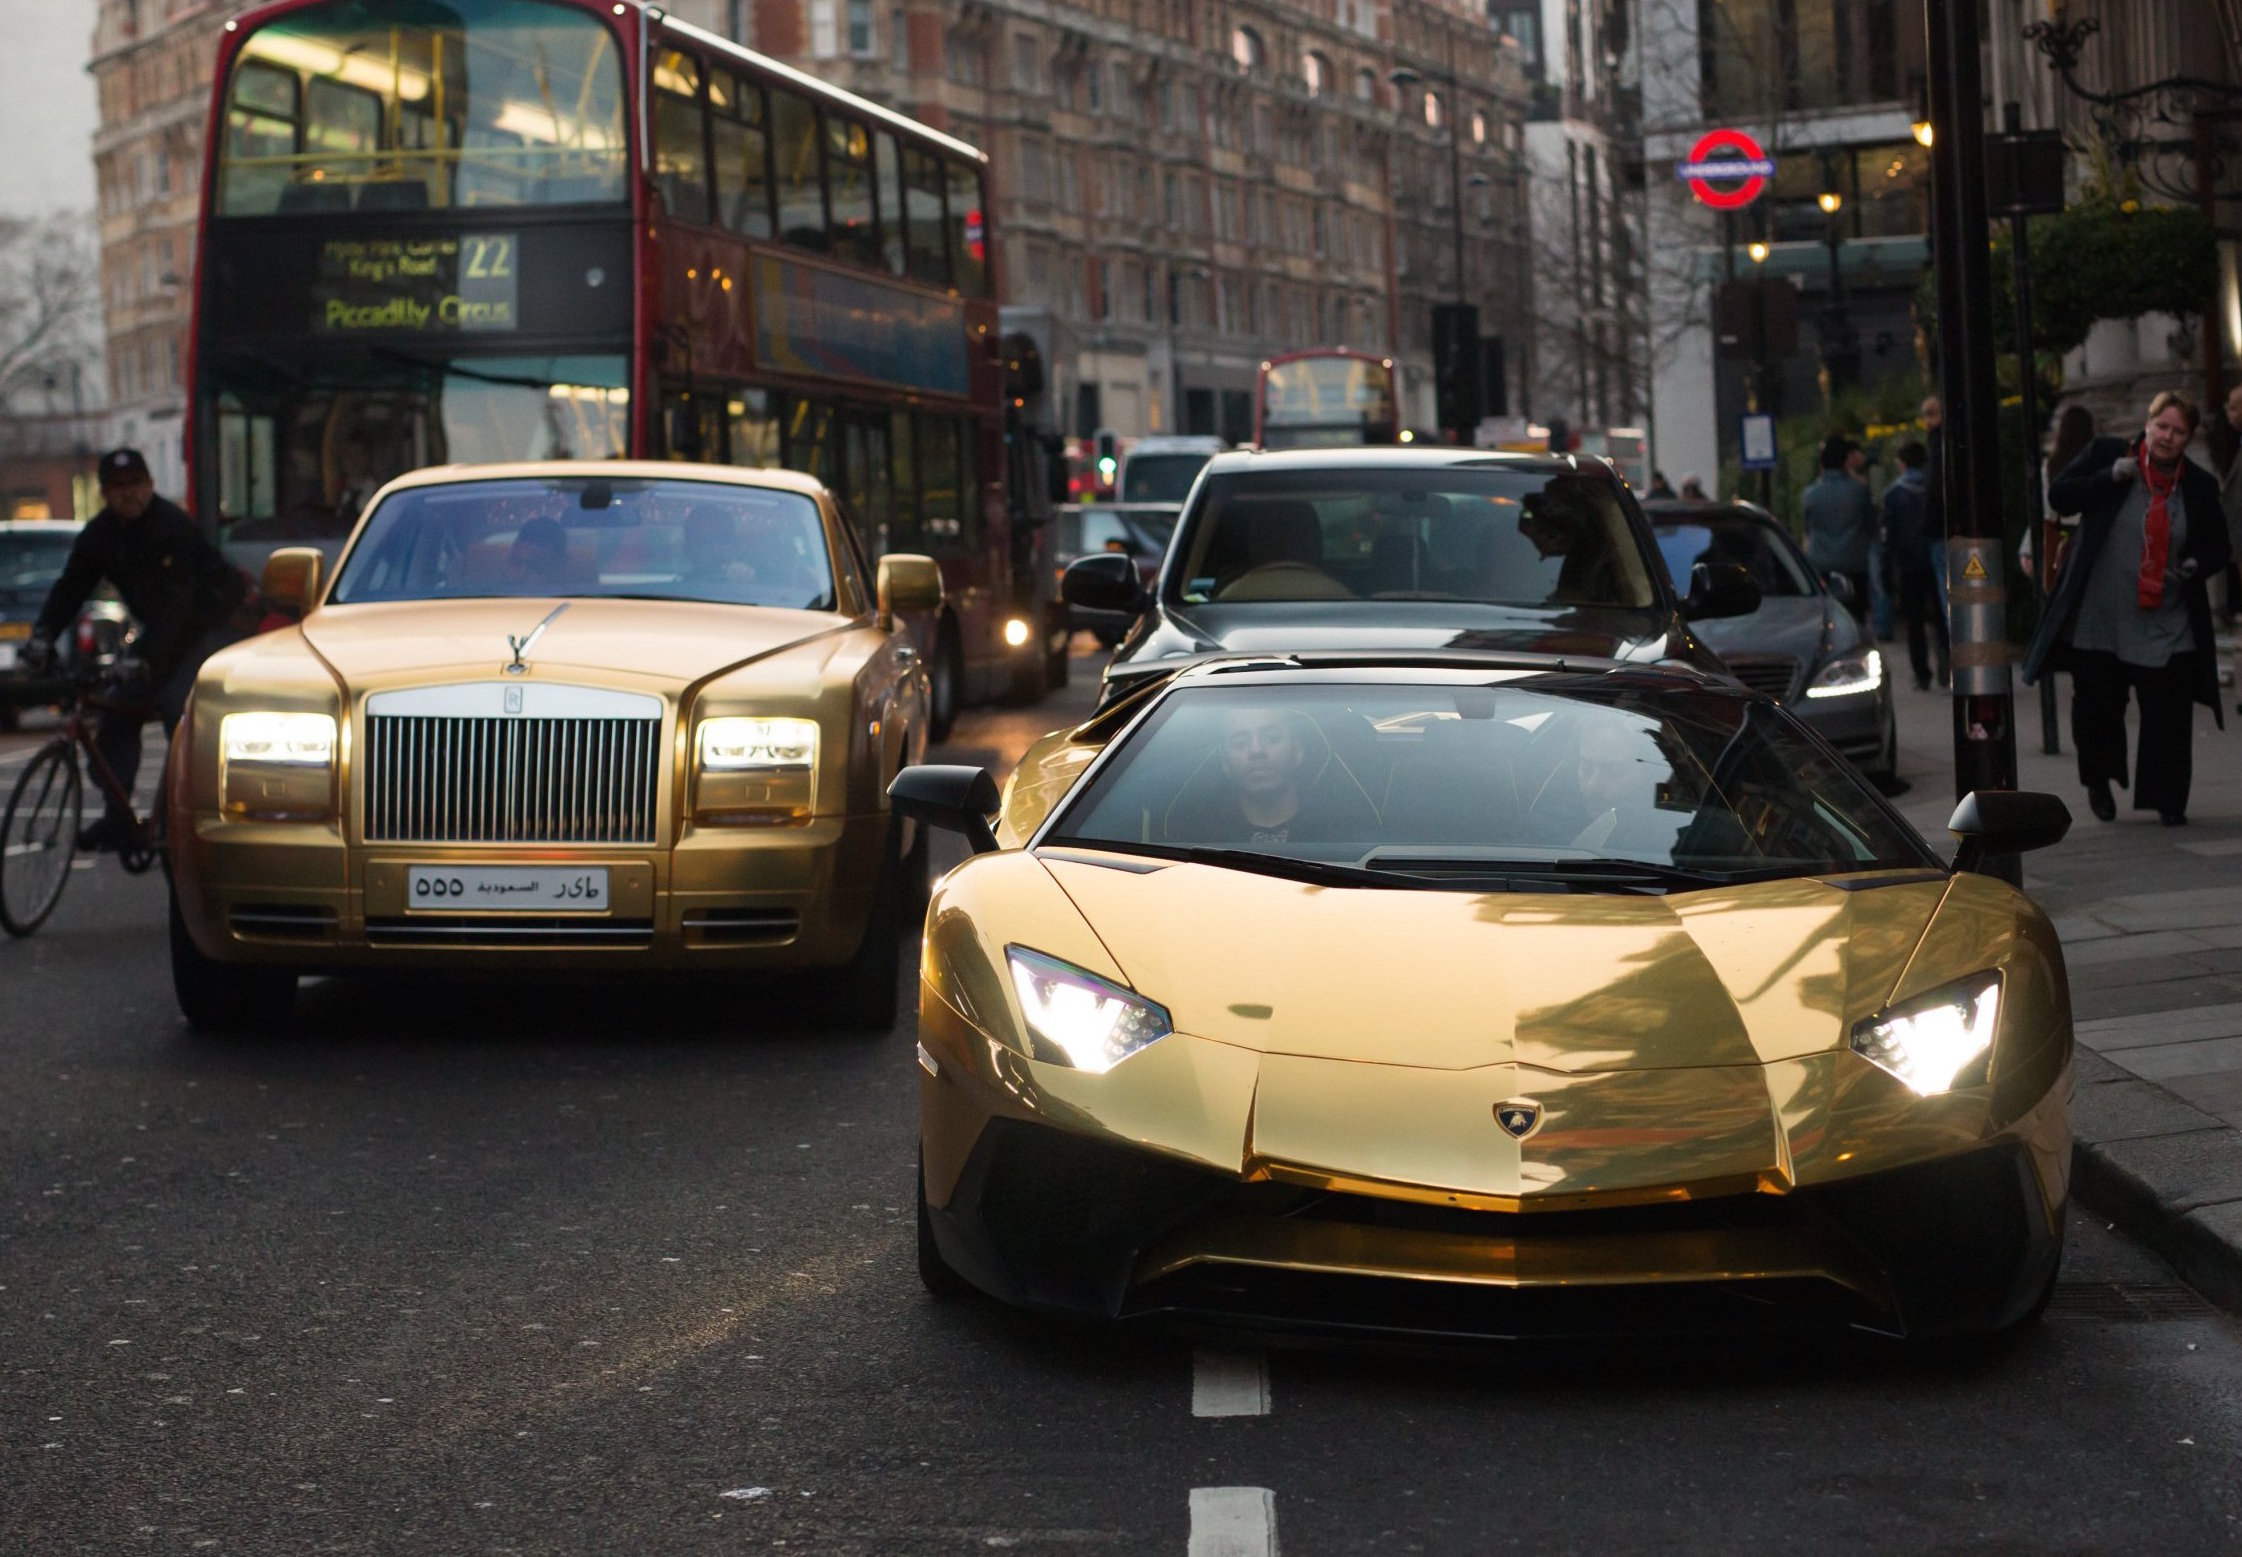 Gold Plated High Performance Supercars Spotted In London